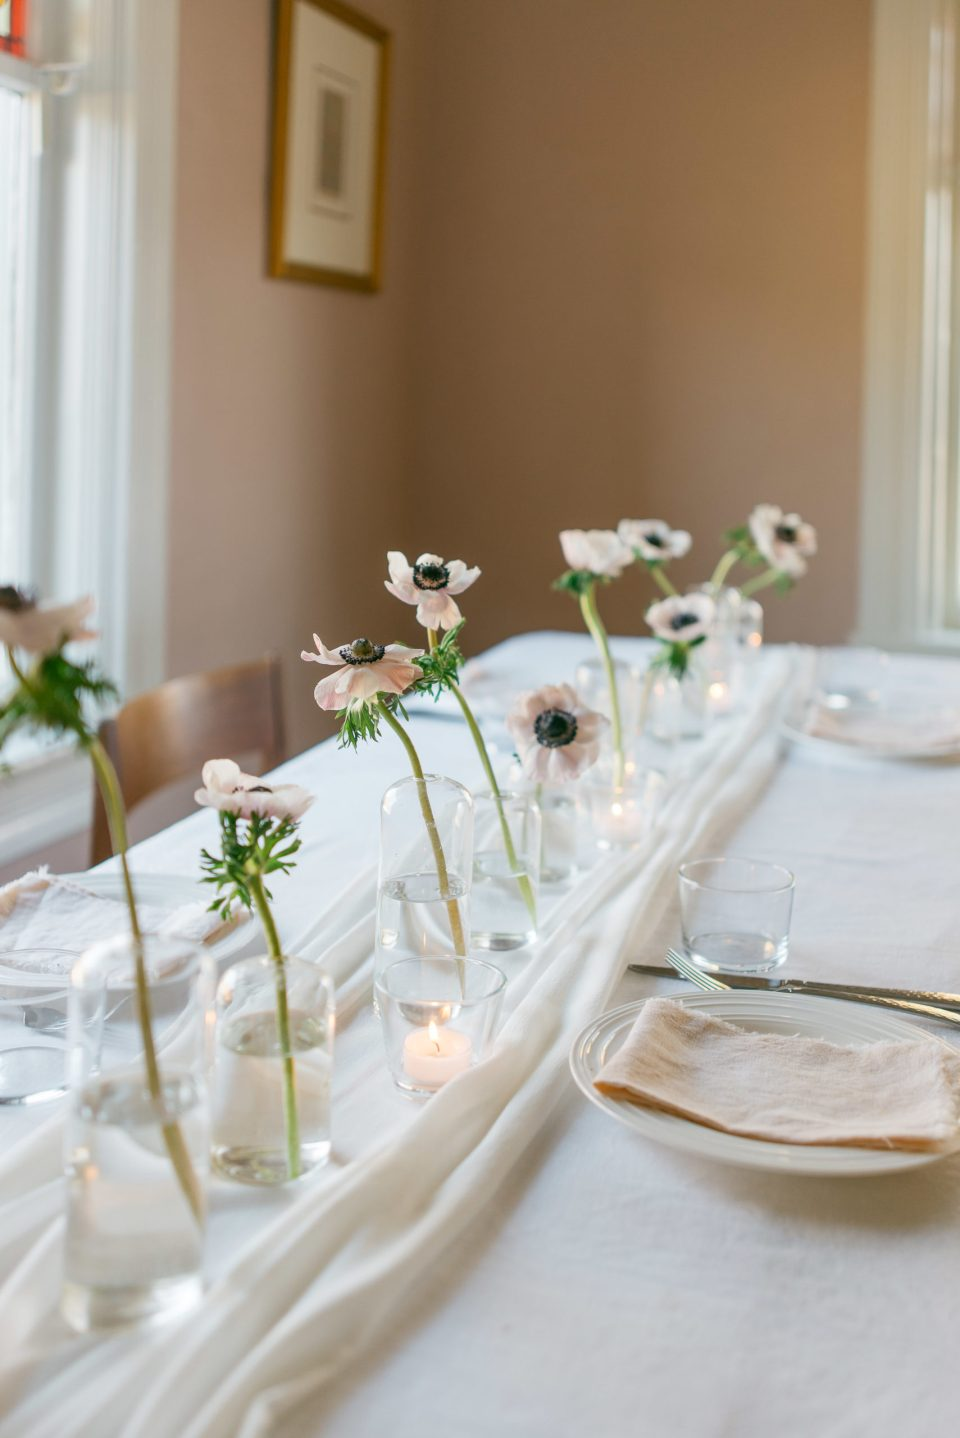 Centrepieces for Rectangular Tables | Wedding Centrepieces | Bud Vases | Anemone